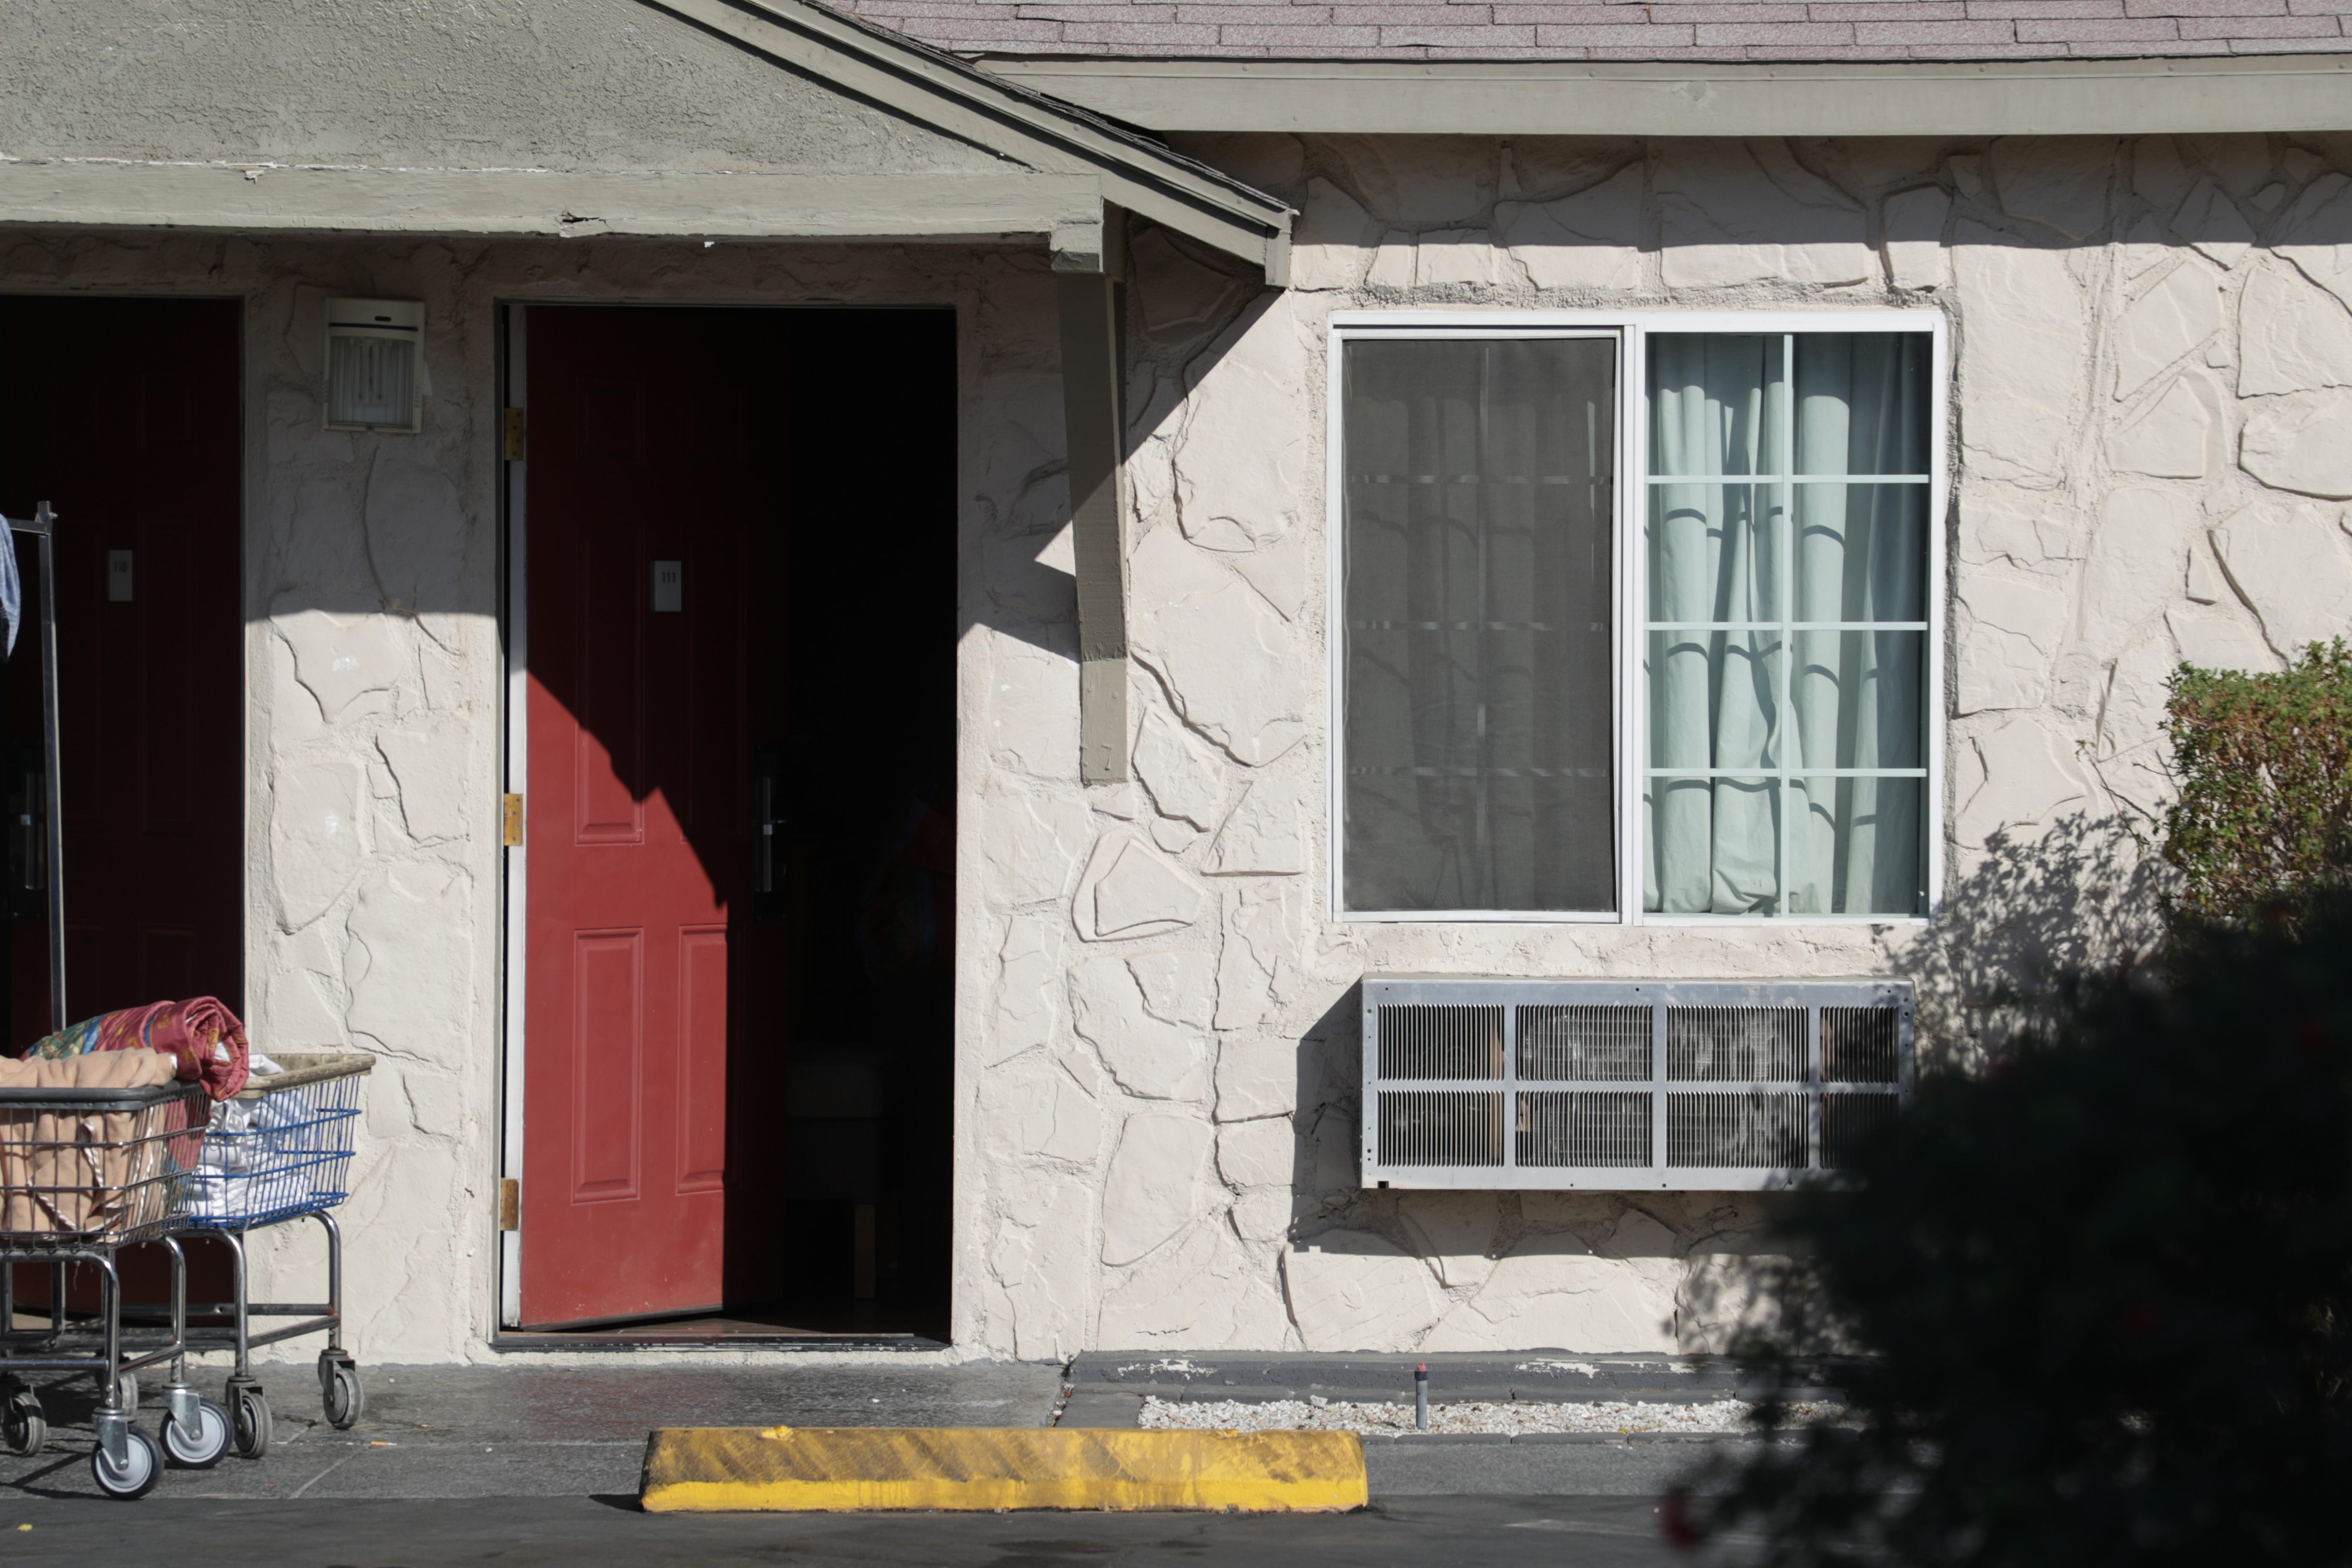 Rodeway Inn & Suites in Indio, Calif. partnered with the state for Project Roomkey, an effort by the state to house individuals experiencing homelessness during the COVID-19 pandemic.